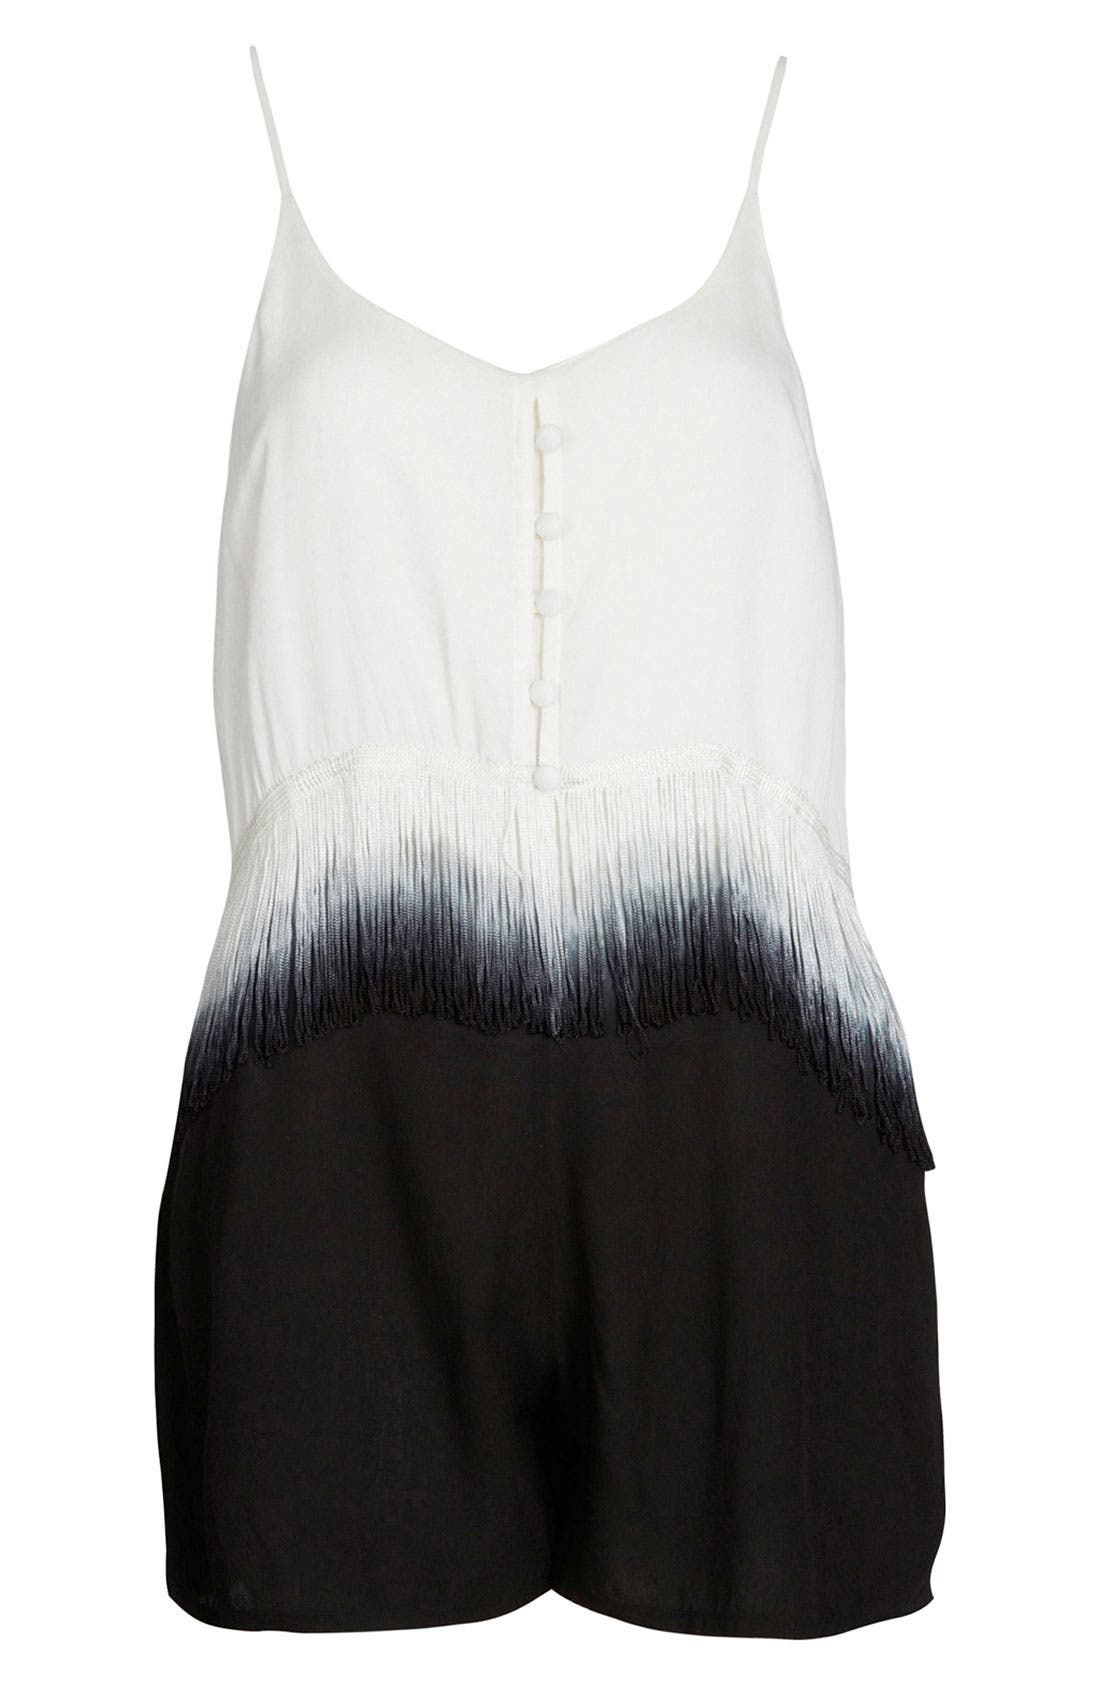 Alternate Image 1 Selected - Topshop Dip Dye Fringe Romper